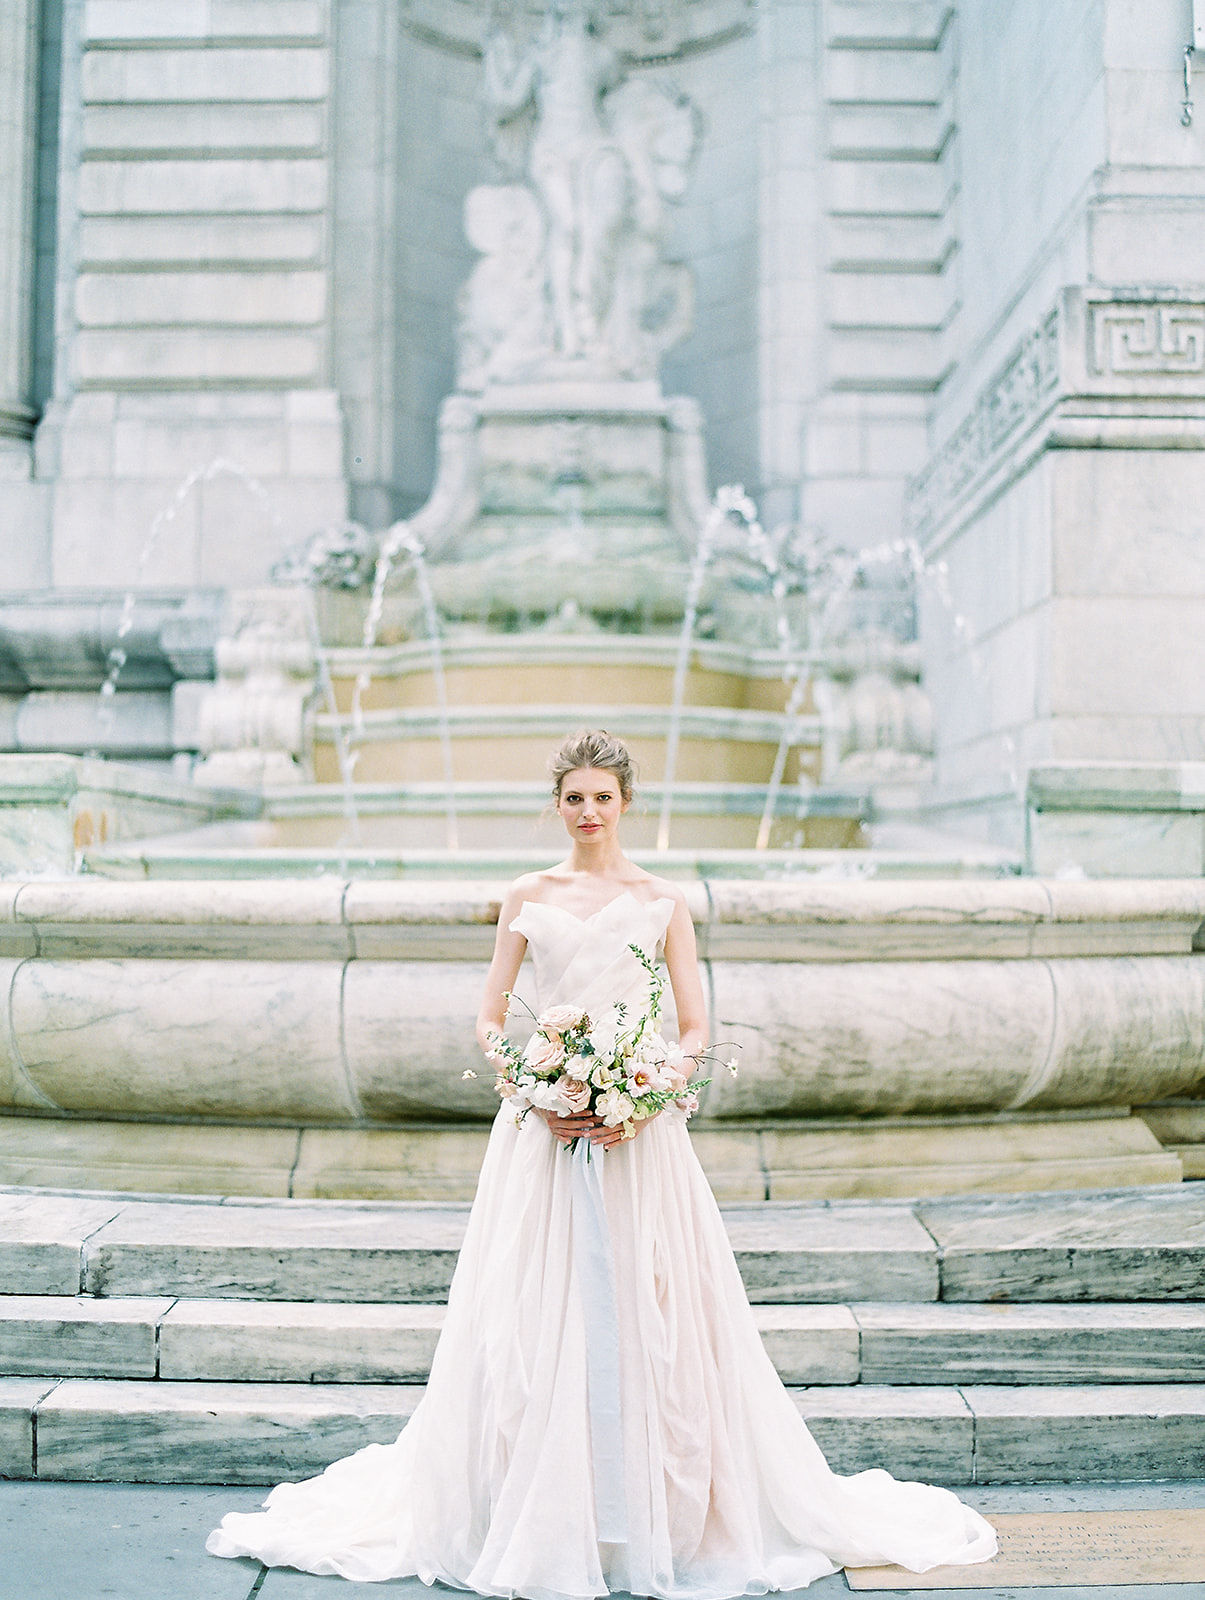 alla prima draped linen wedding gown at new york public library2.jpg